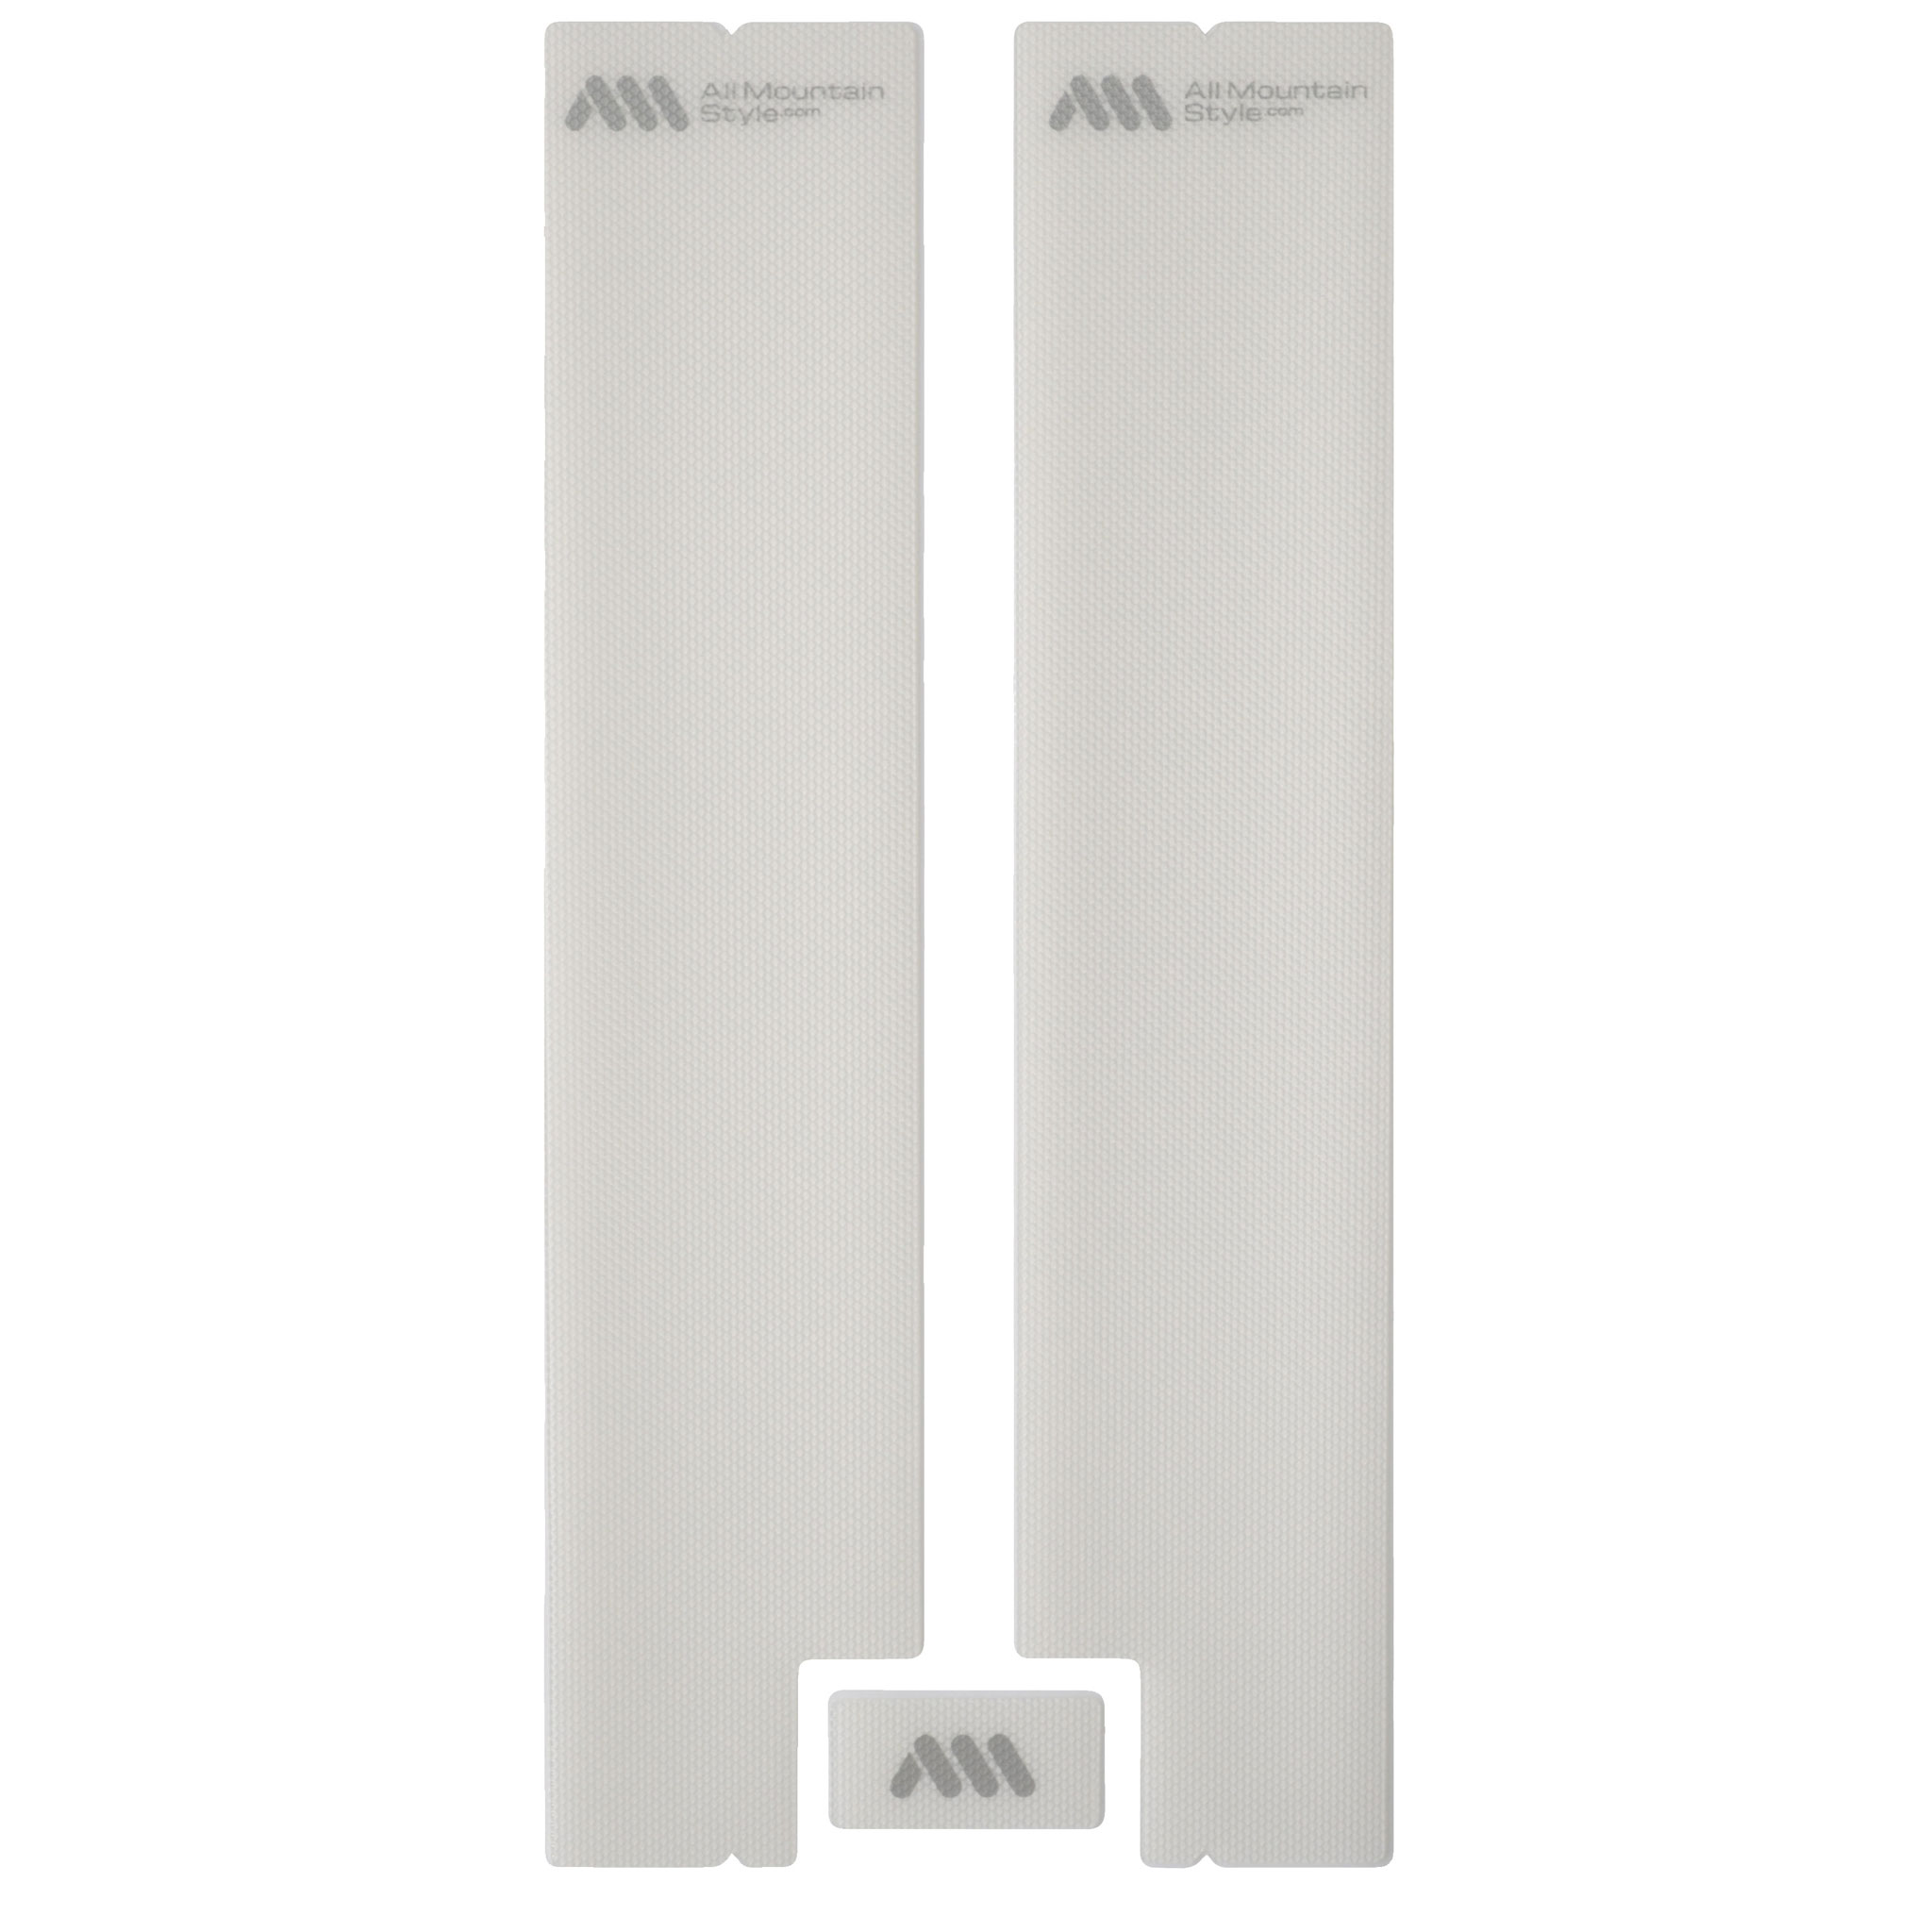 All Mountain Style Honeycomb Fork Guard, Clear/Silver